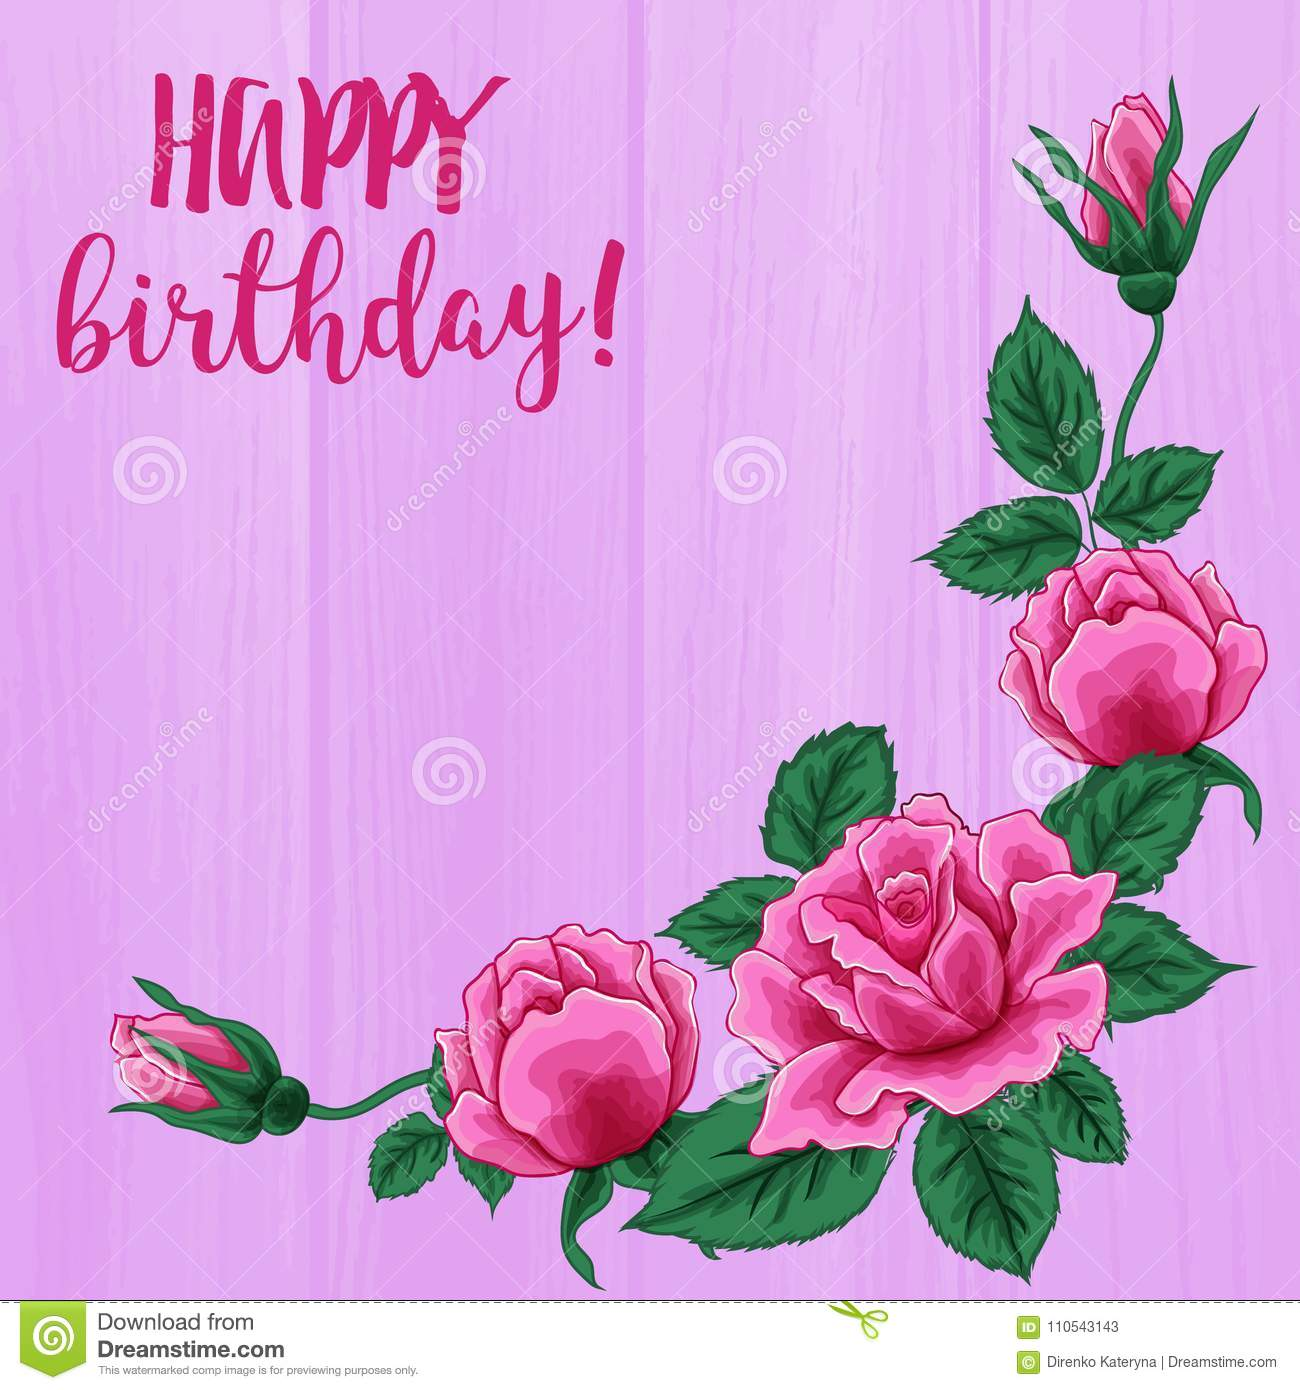 Happy Birthday Card Beautiful Roses Bouquet On Pink Wood Texture